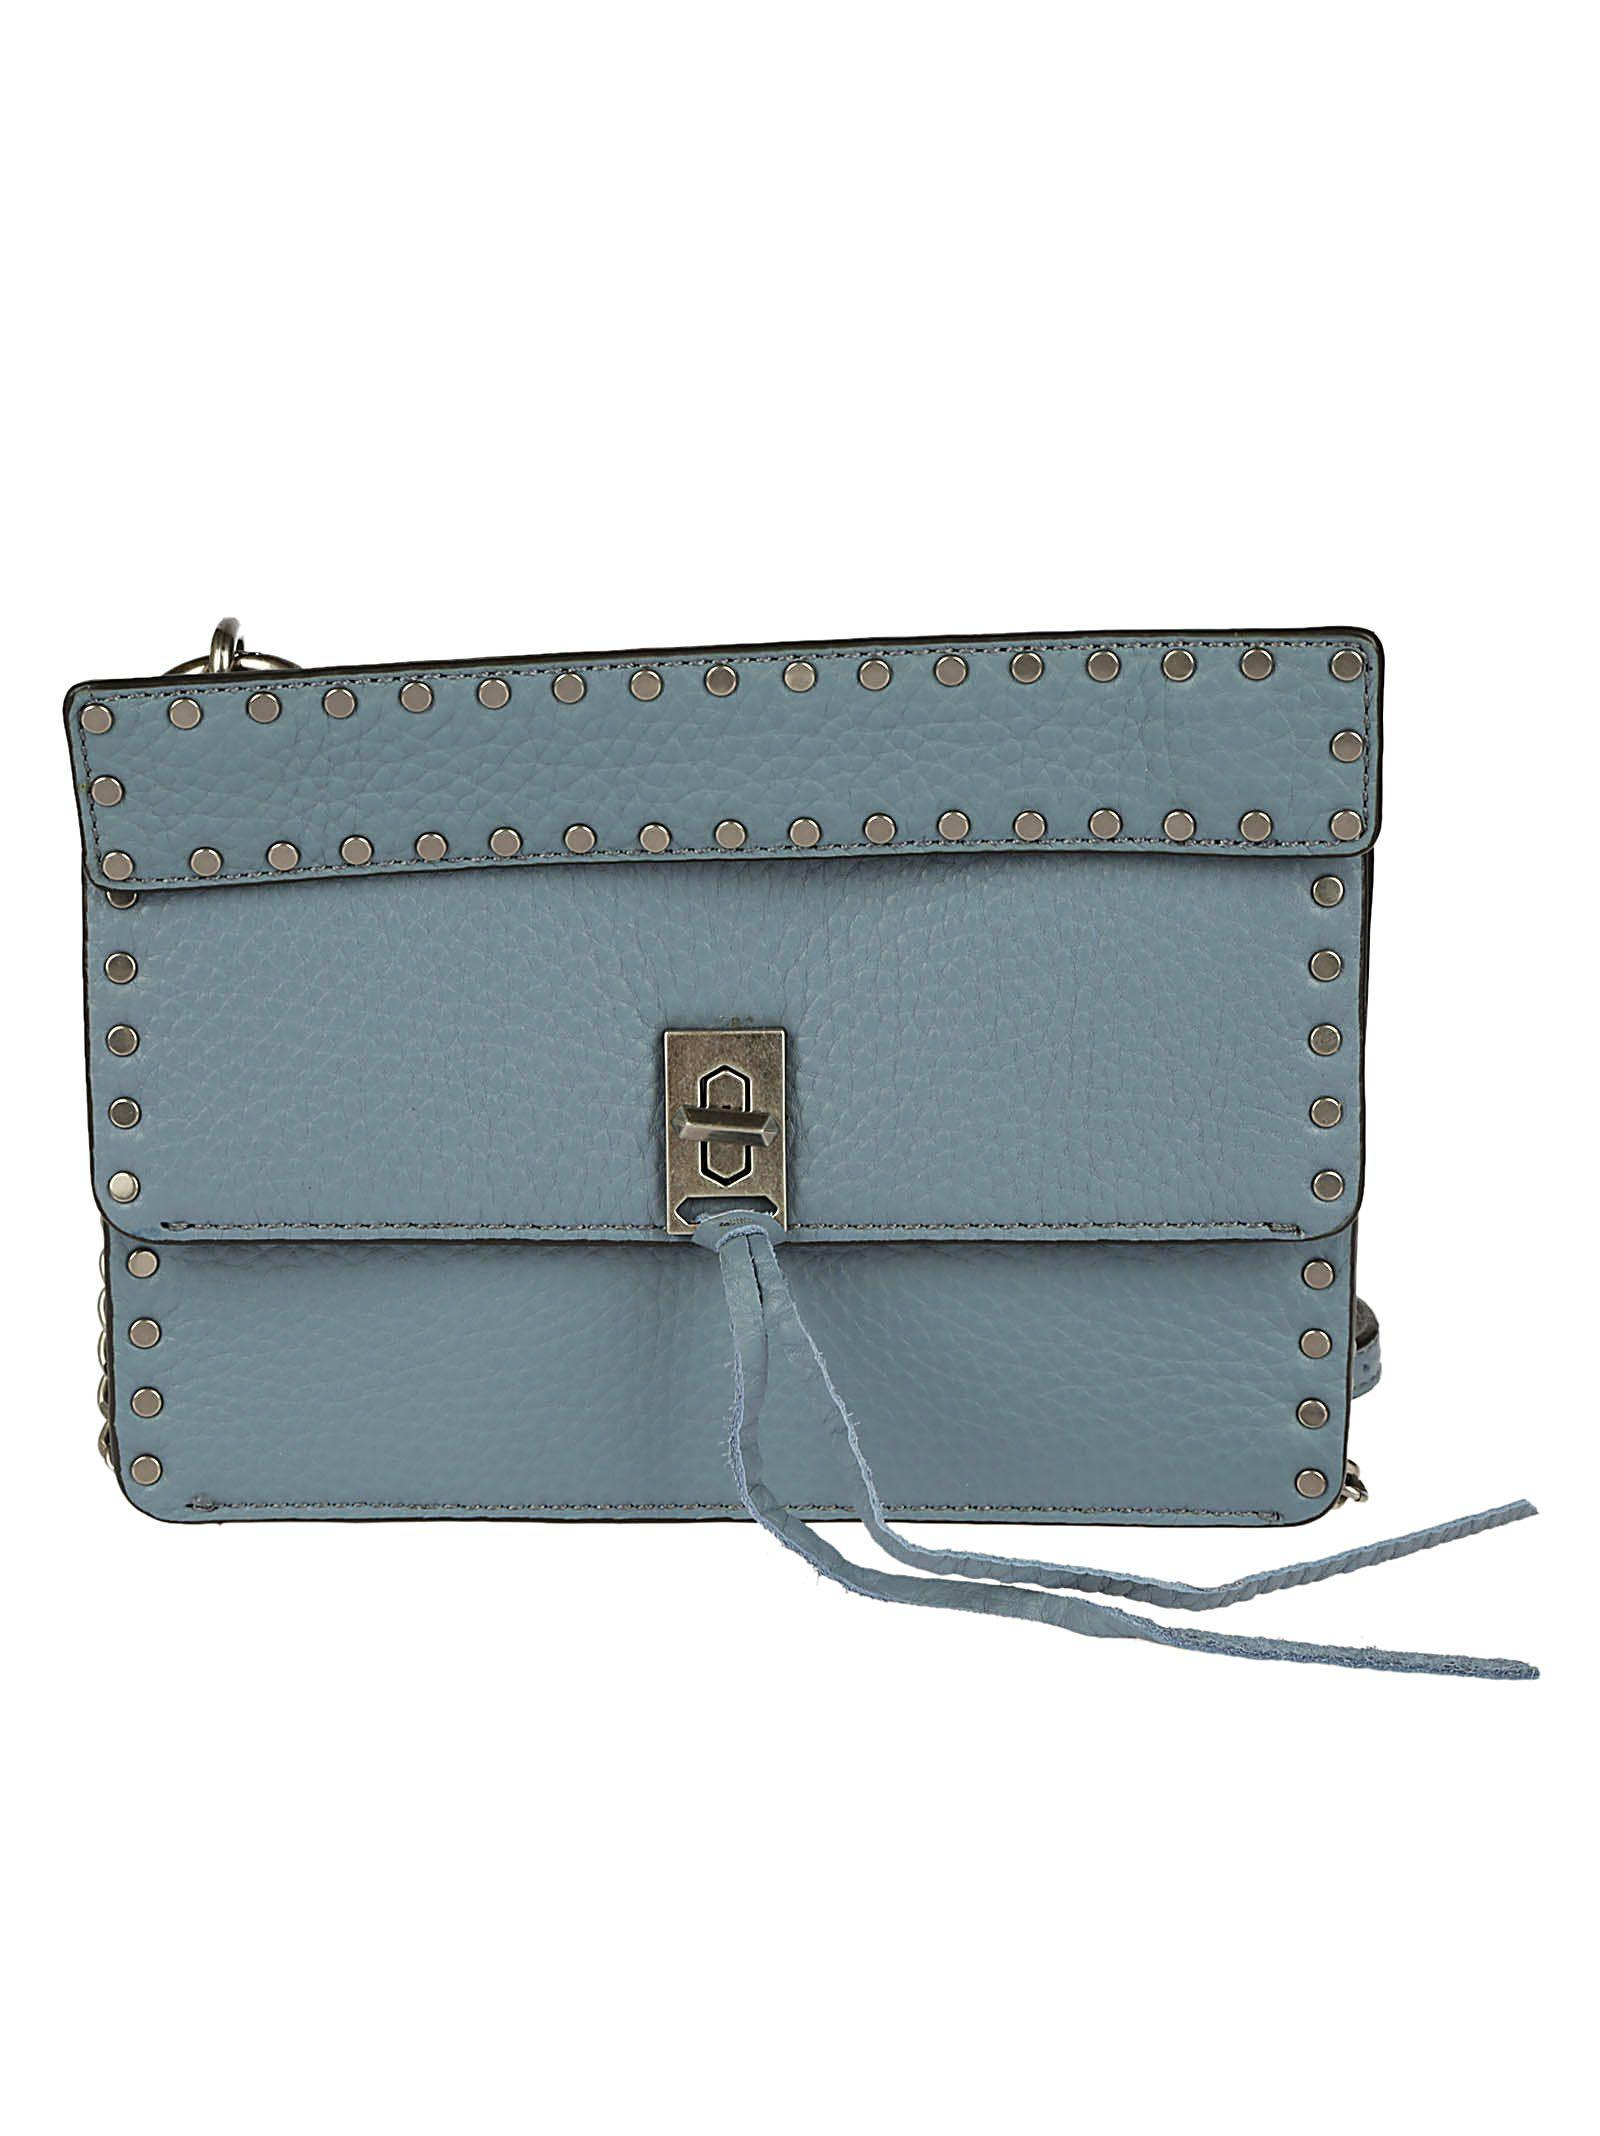 Rebecca Minkoff Darren Top Handle Flap Crossbody Bag